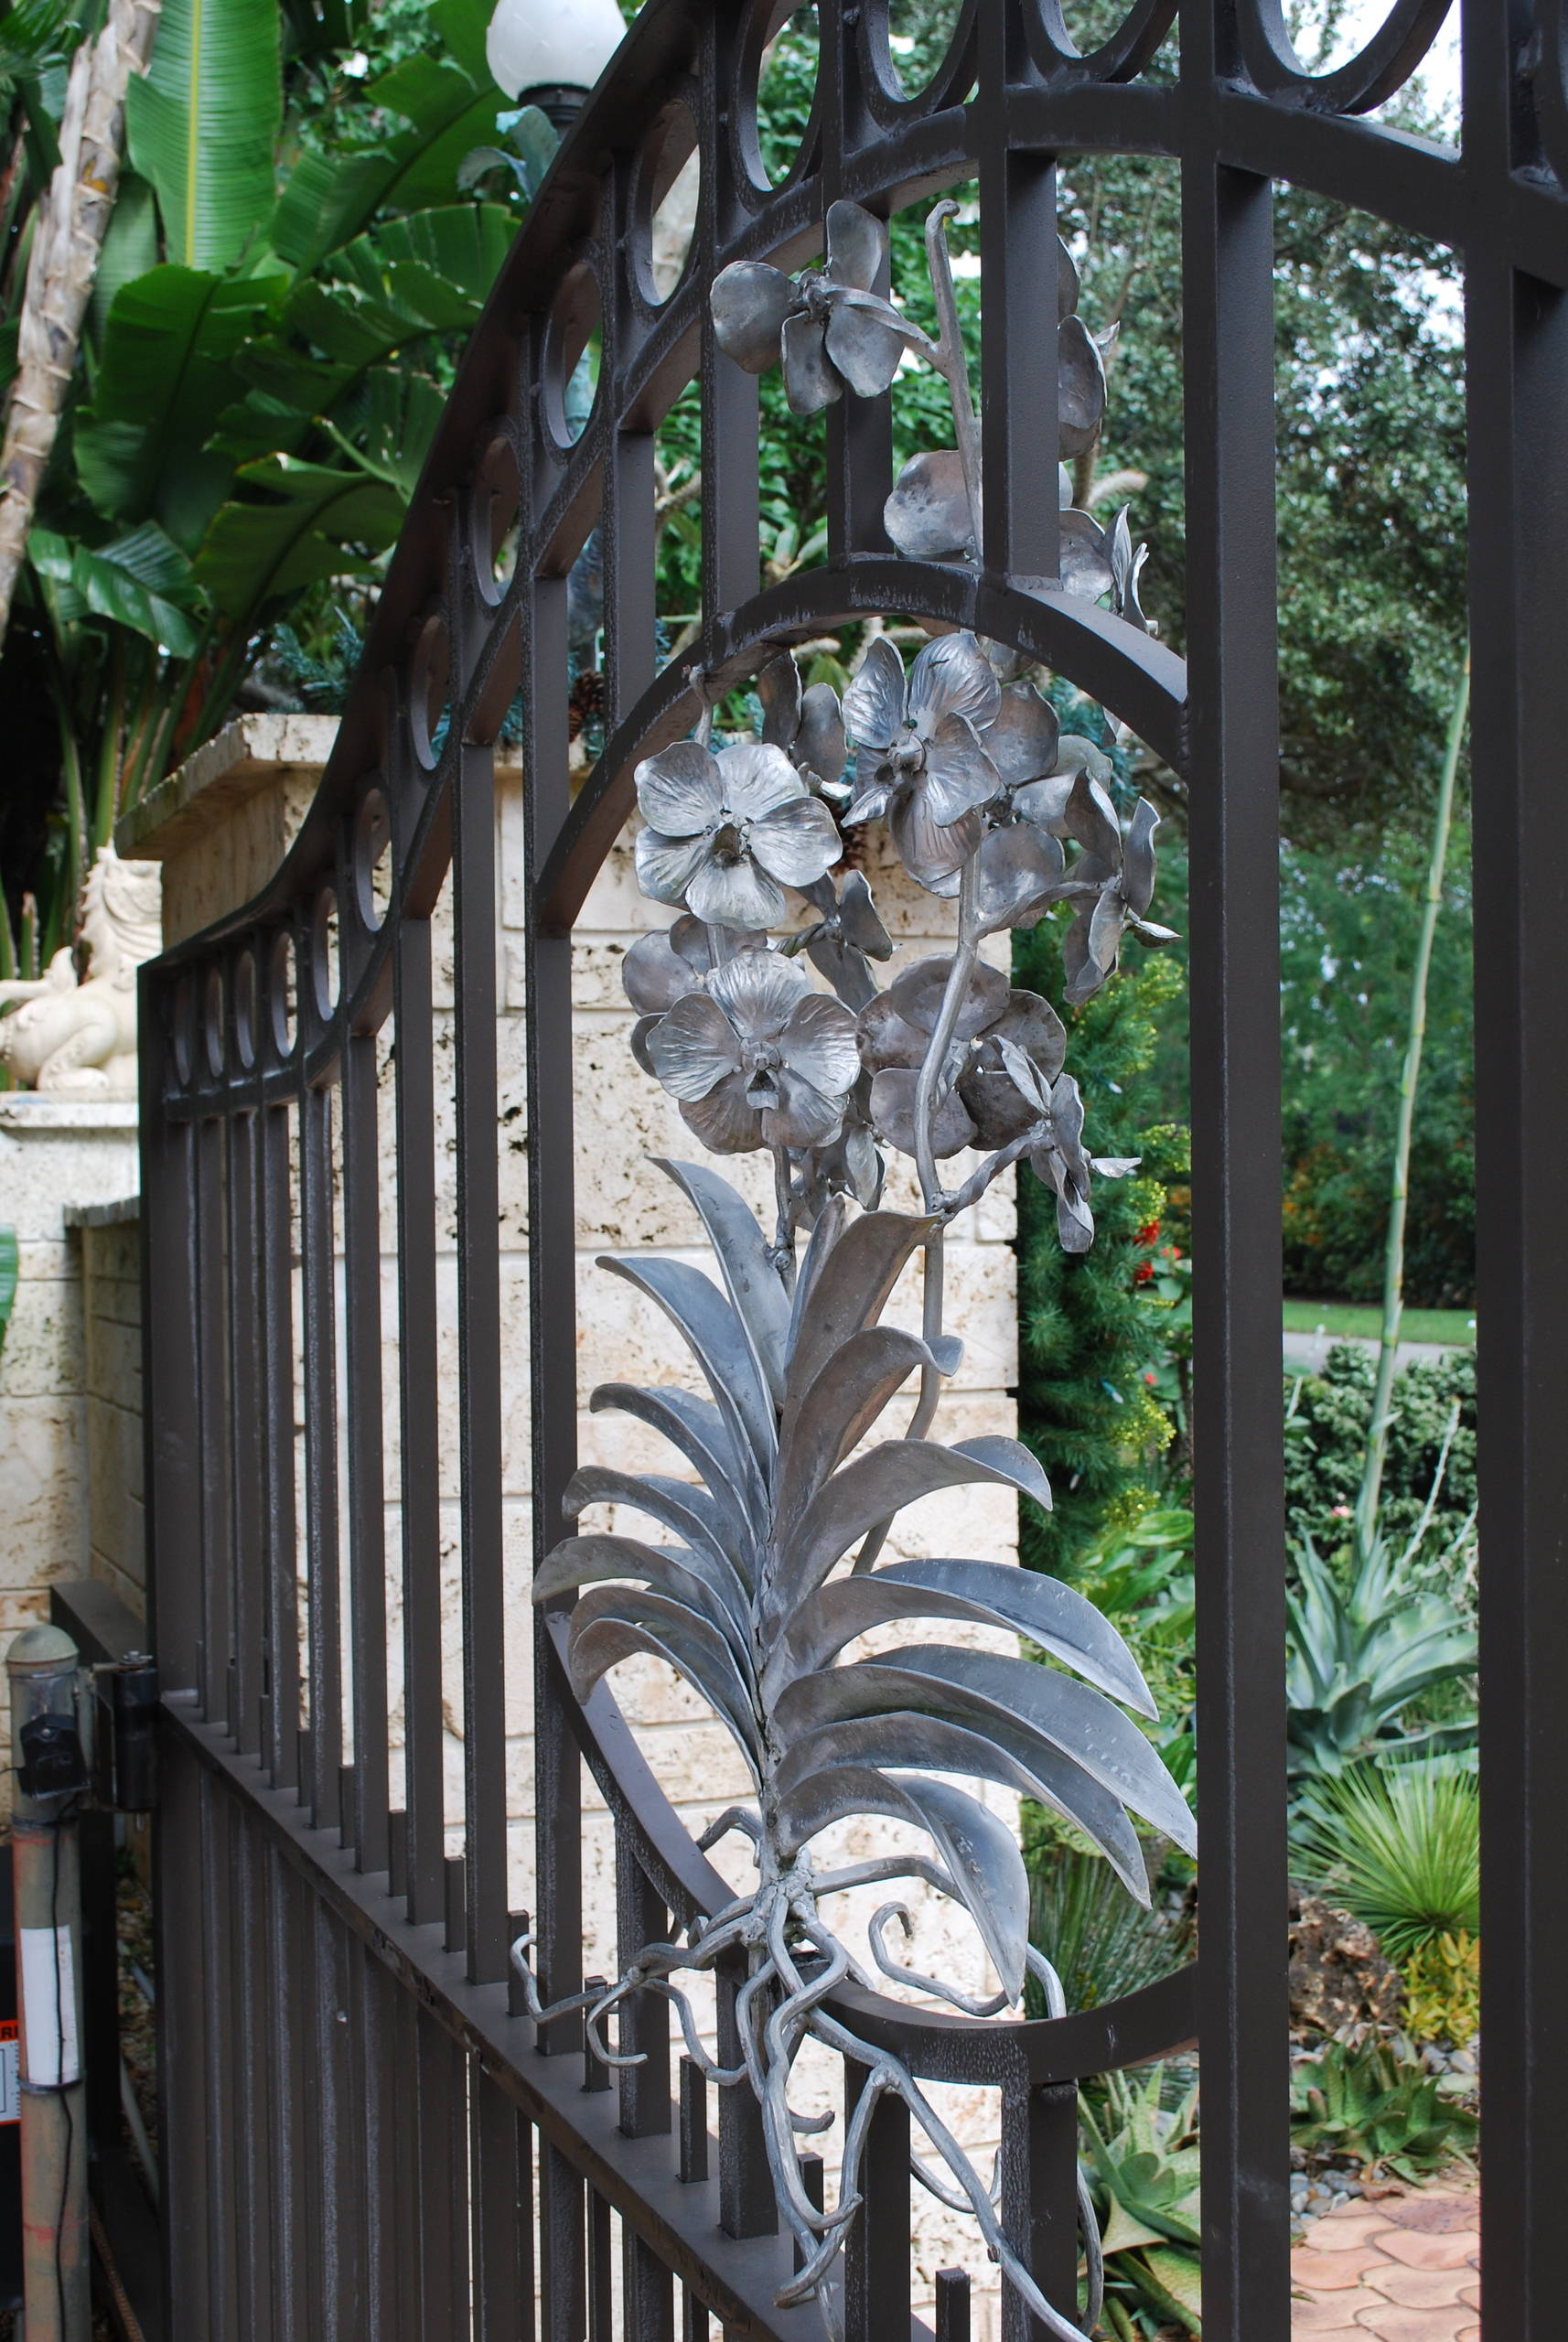 A vanda sculpture adorns the front gate